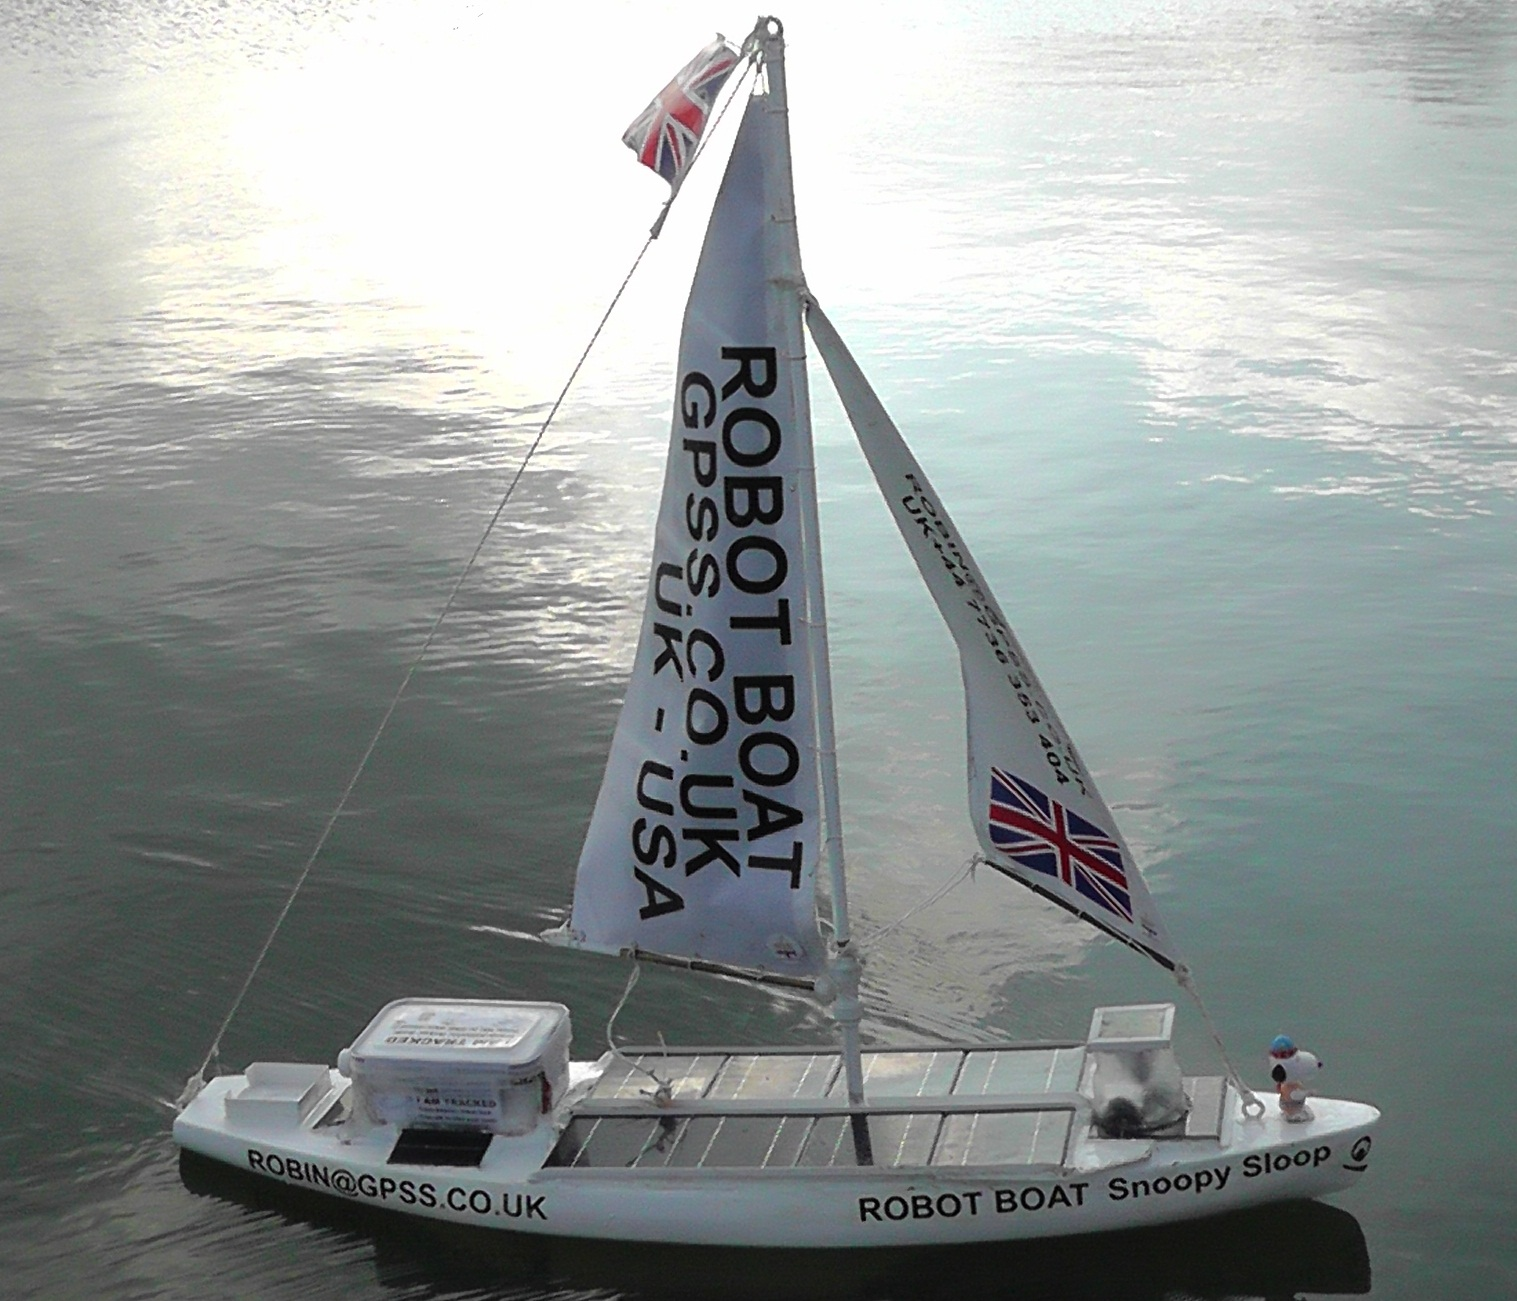 Snoopy Sloop 9 built for the 2013 Trans-Atlantic attempt